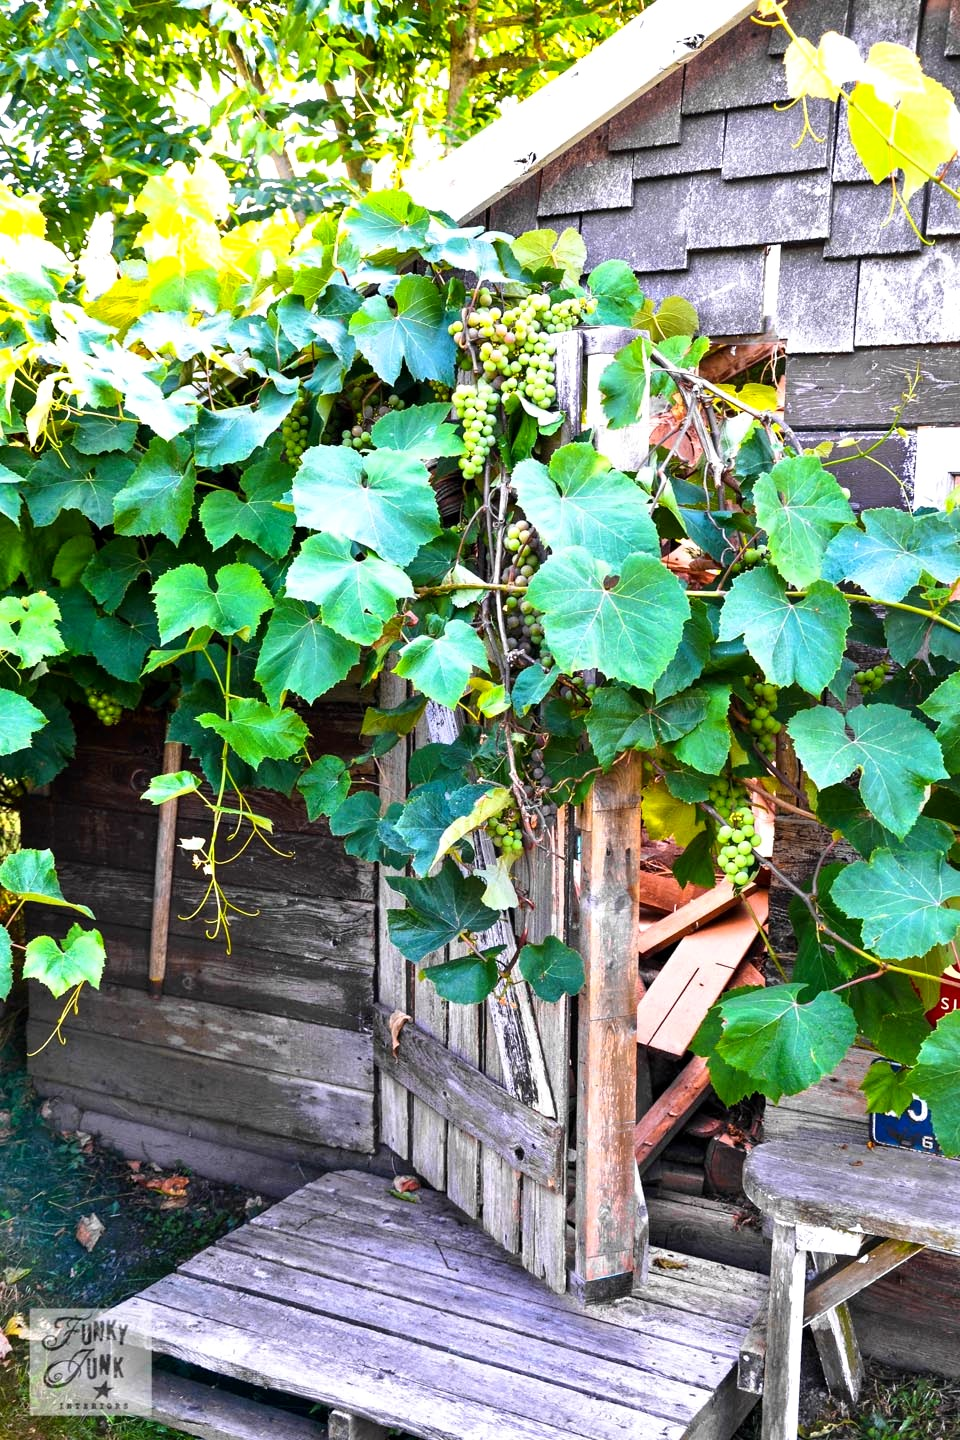 Rustic garden shed via Funky Junk Interiors - grapevines growing over barnwood door